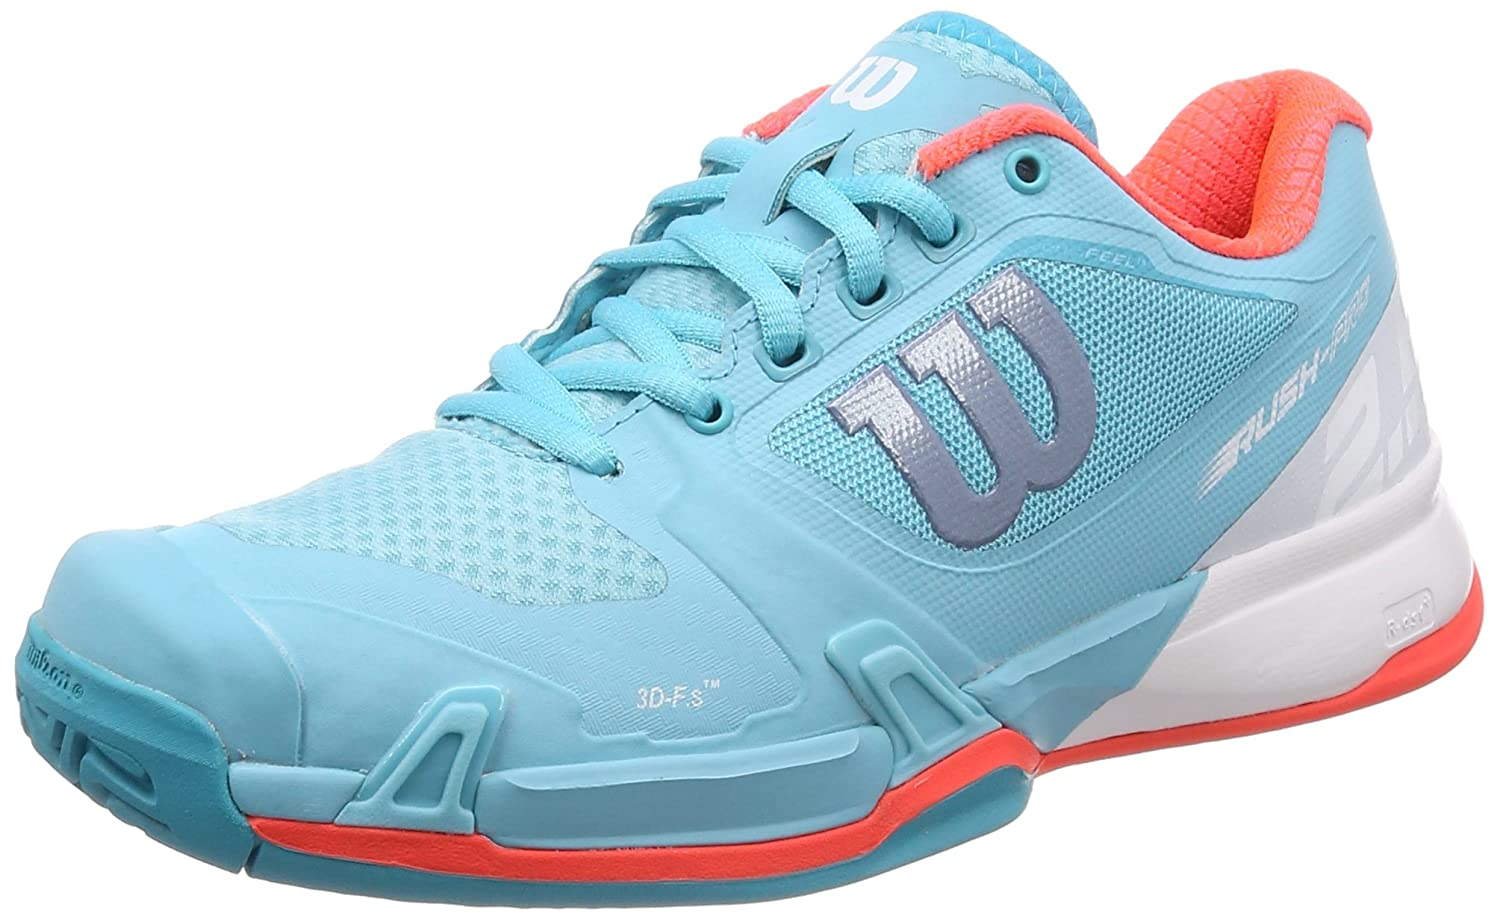 Wilson Rush Pro 2.5 Womens Tennis Shoe B075YMWR98 8.5 B(M) US|Blue Curacao/White/Fiery Coral